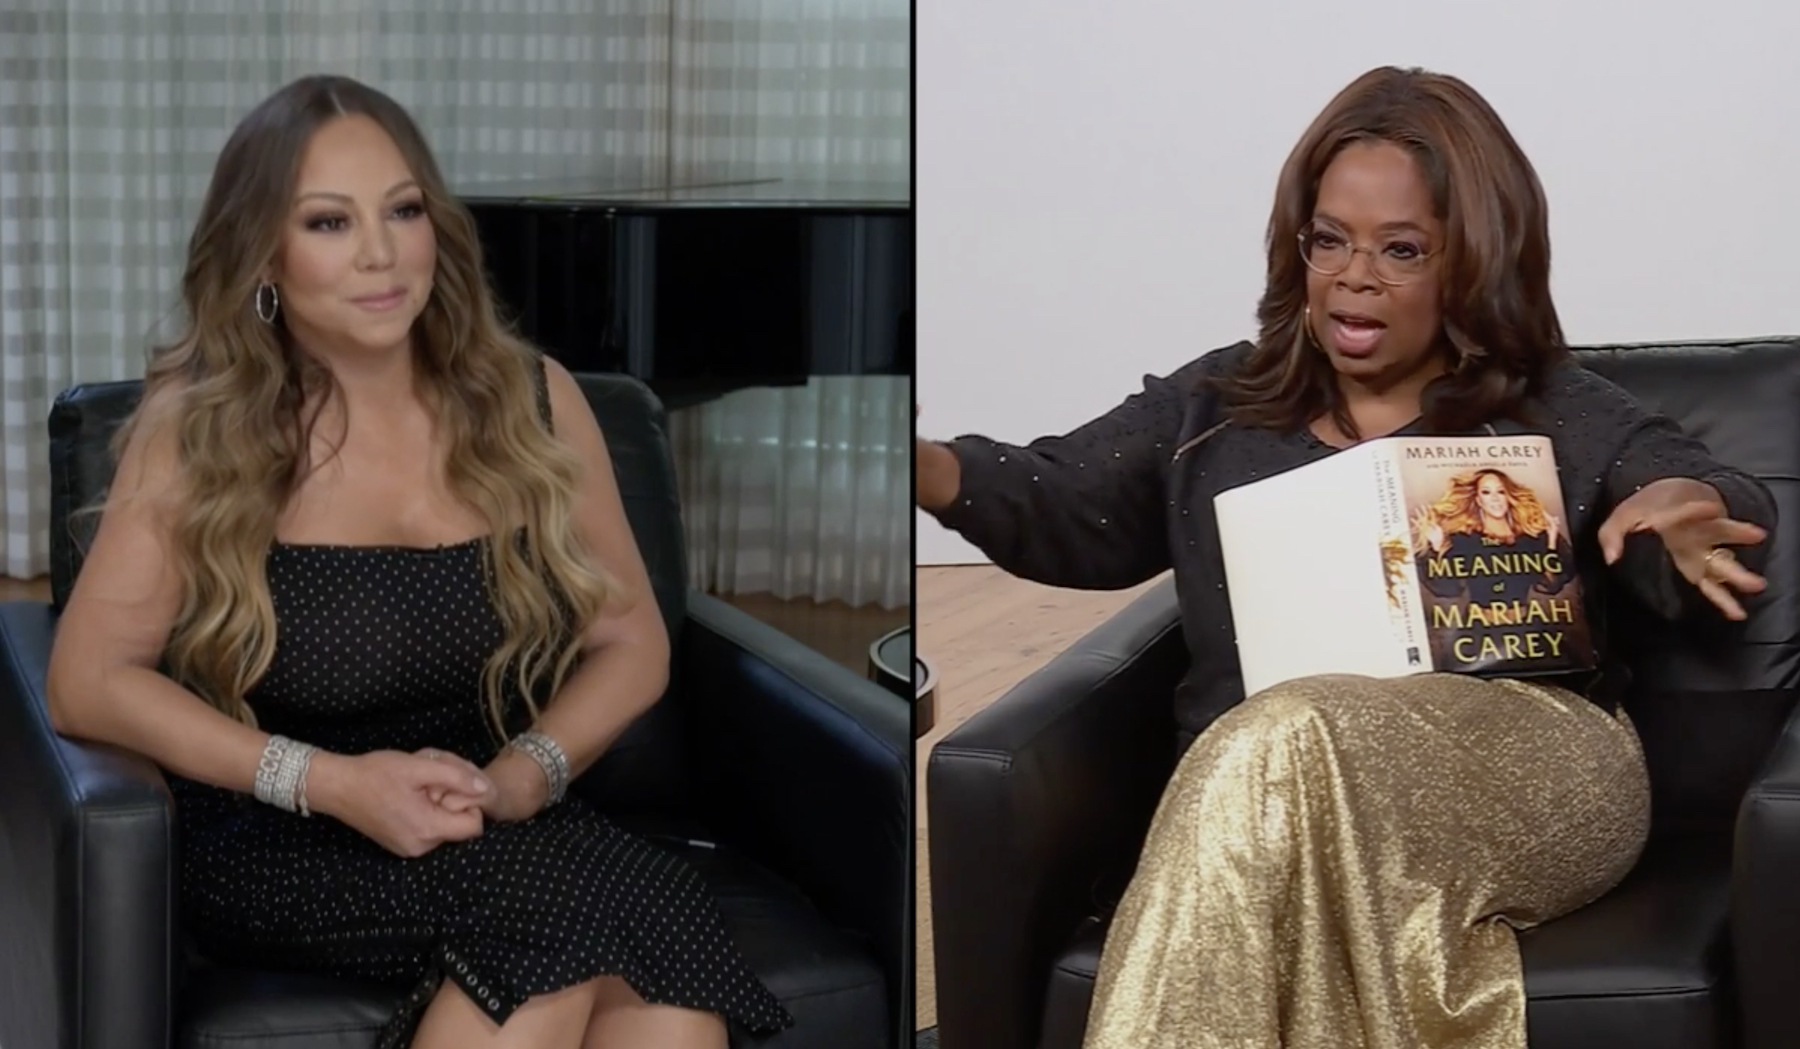 Mariah Carey Talks Being Biracial Finding Unconditional Love in Oprah Interview – Rolling Stone